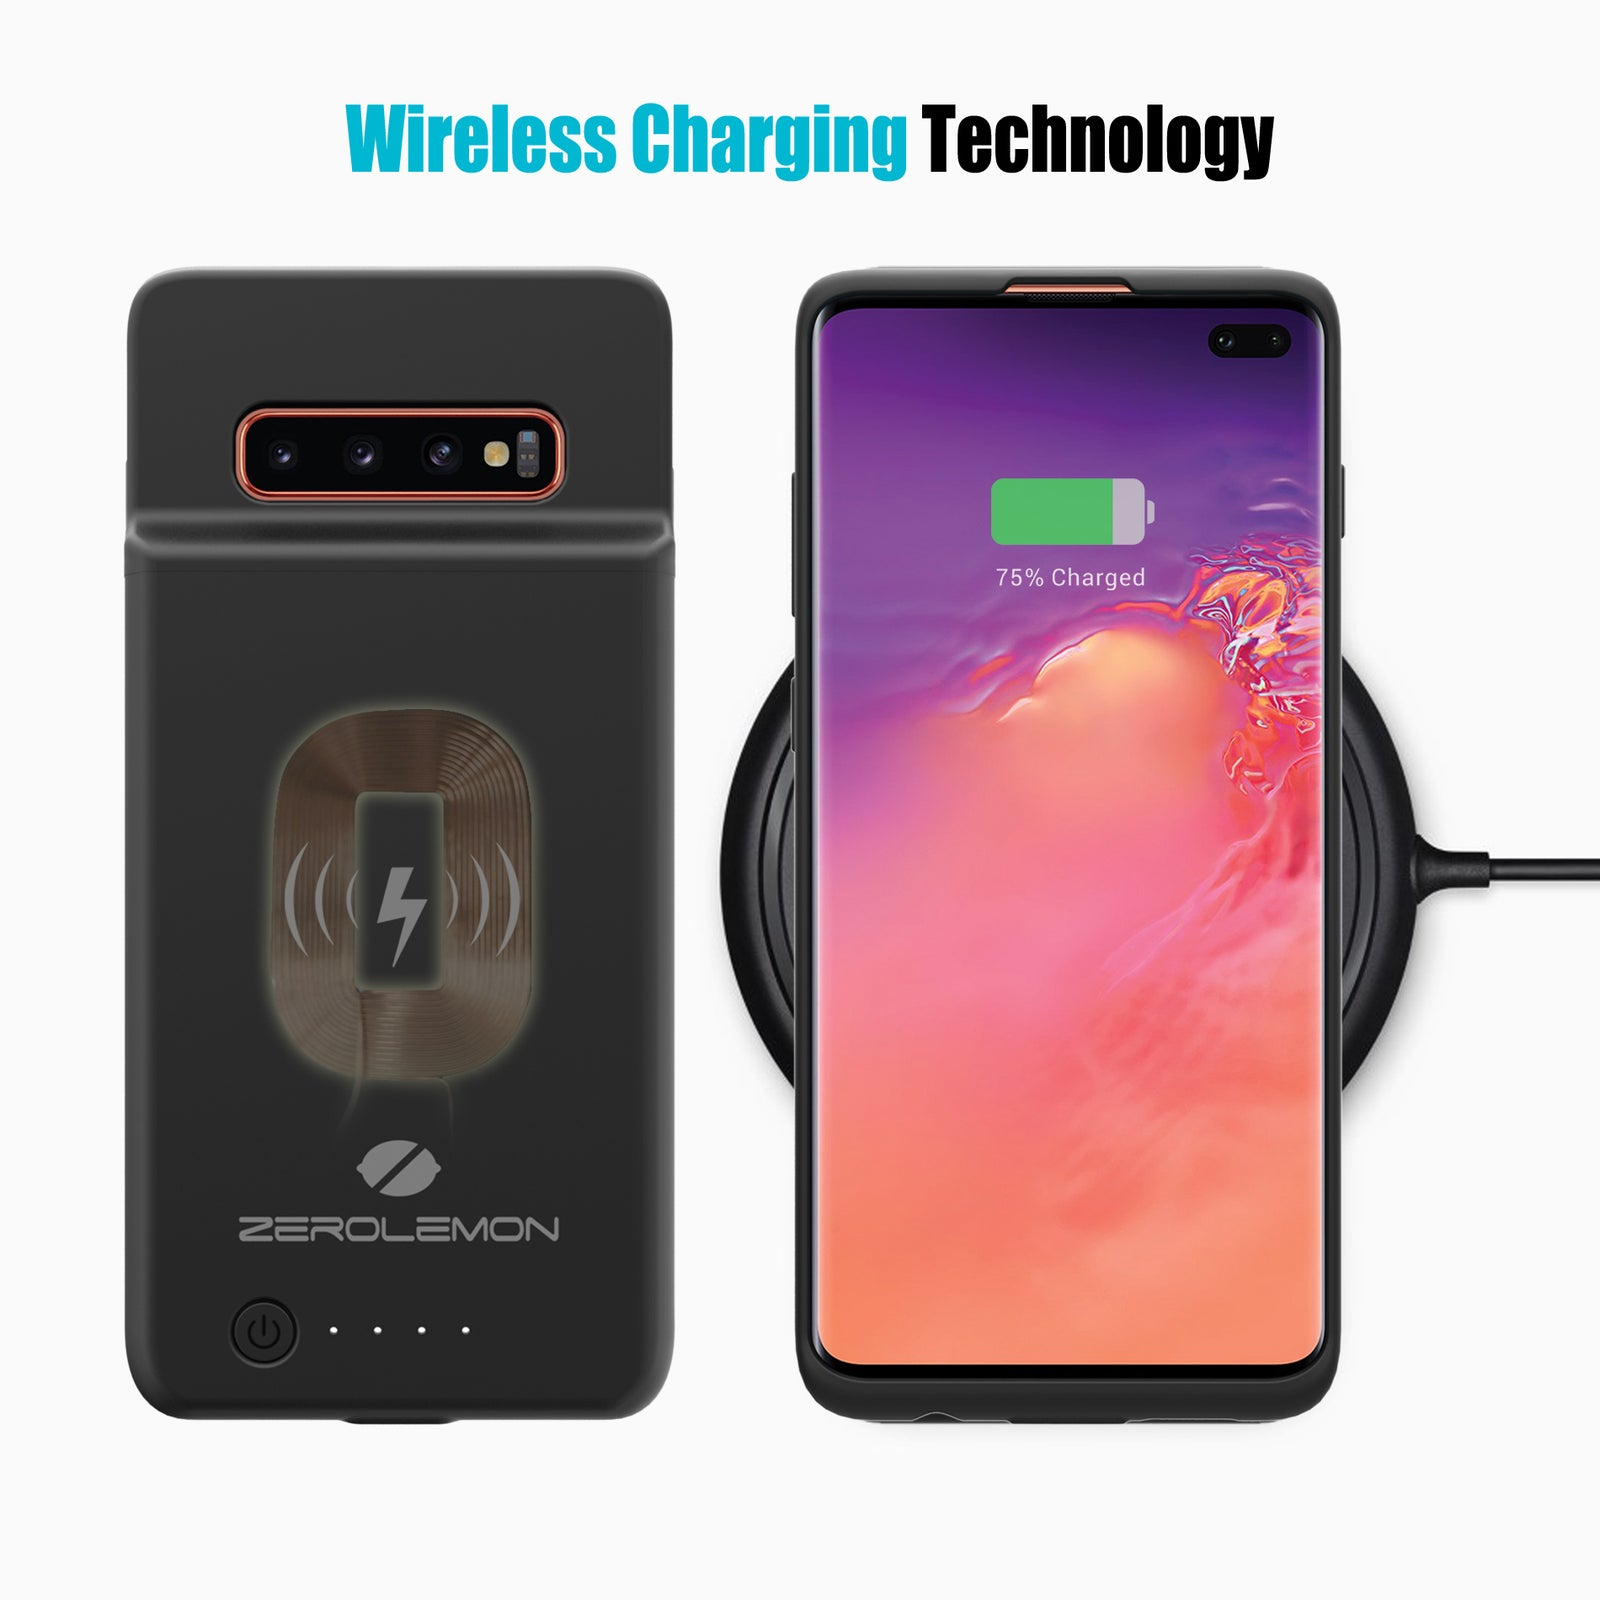 Galaxy S10 Plus 5000mAh Wireless Charging Battery Case